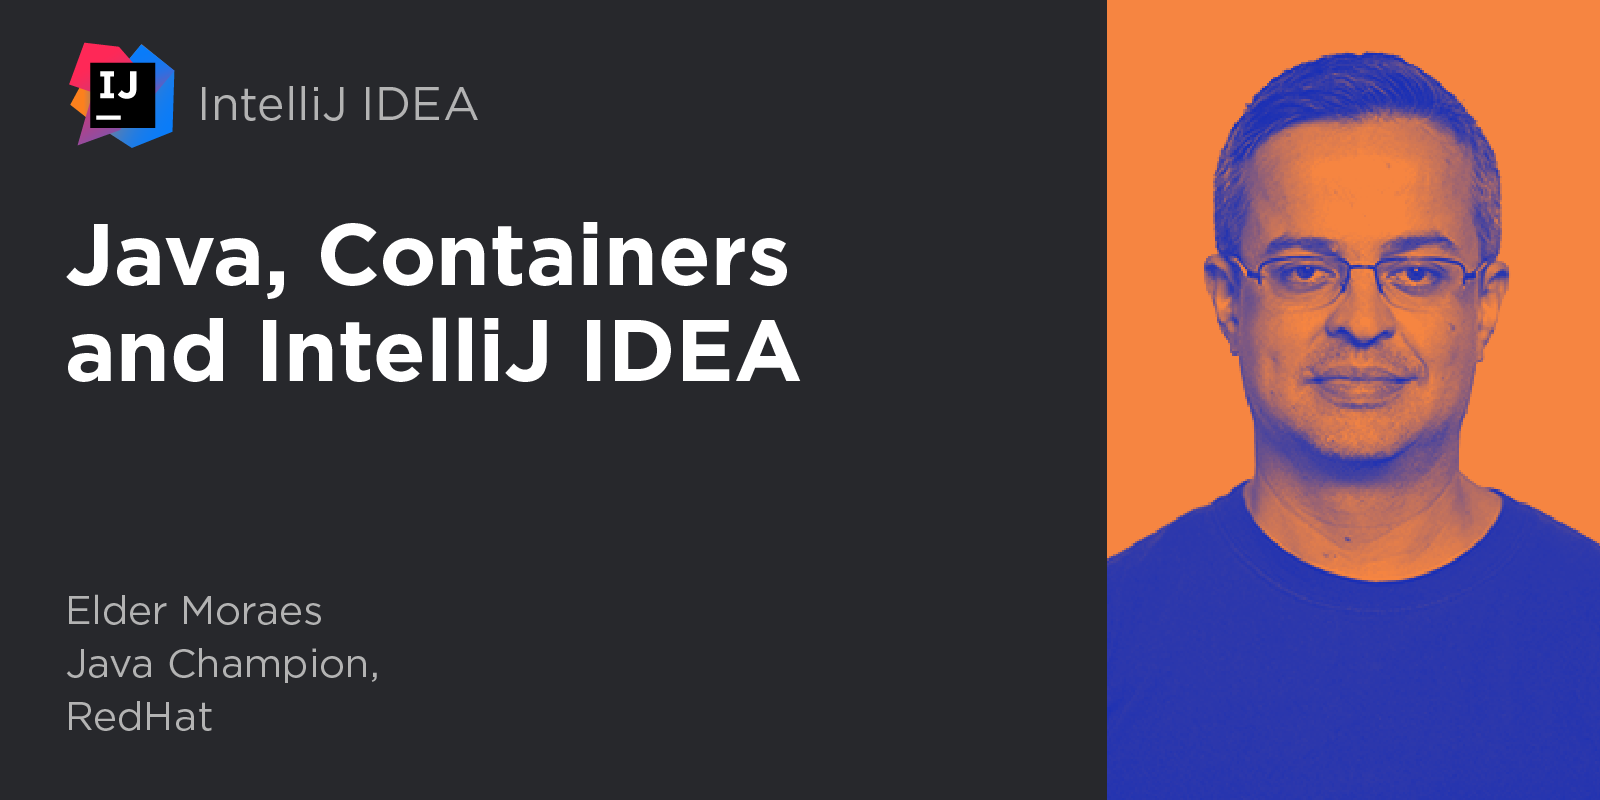 Java, Containers and IntelliJ IDEA